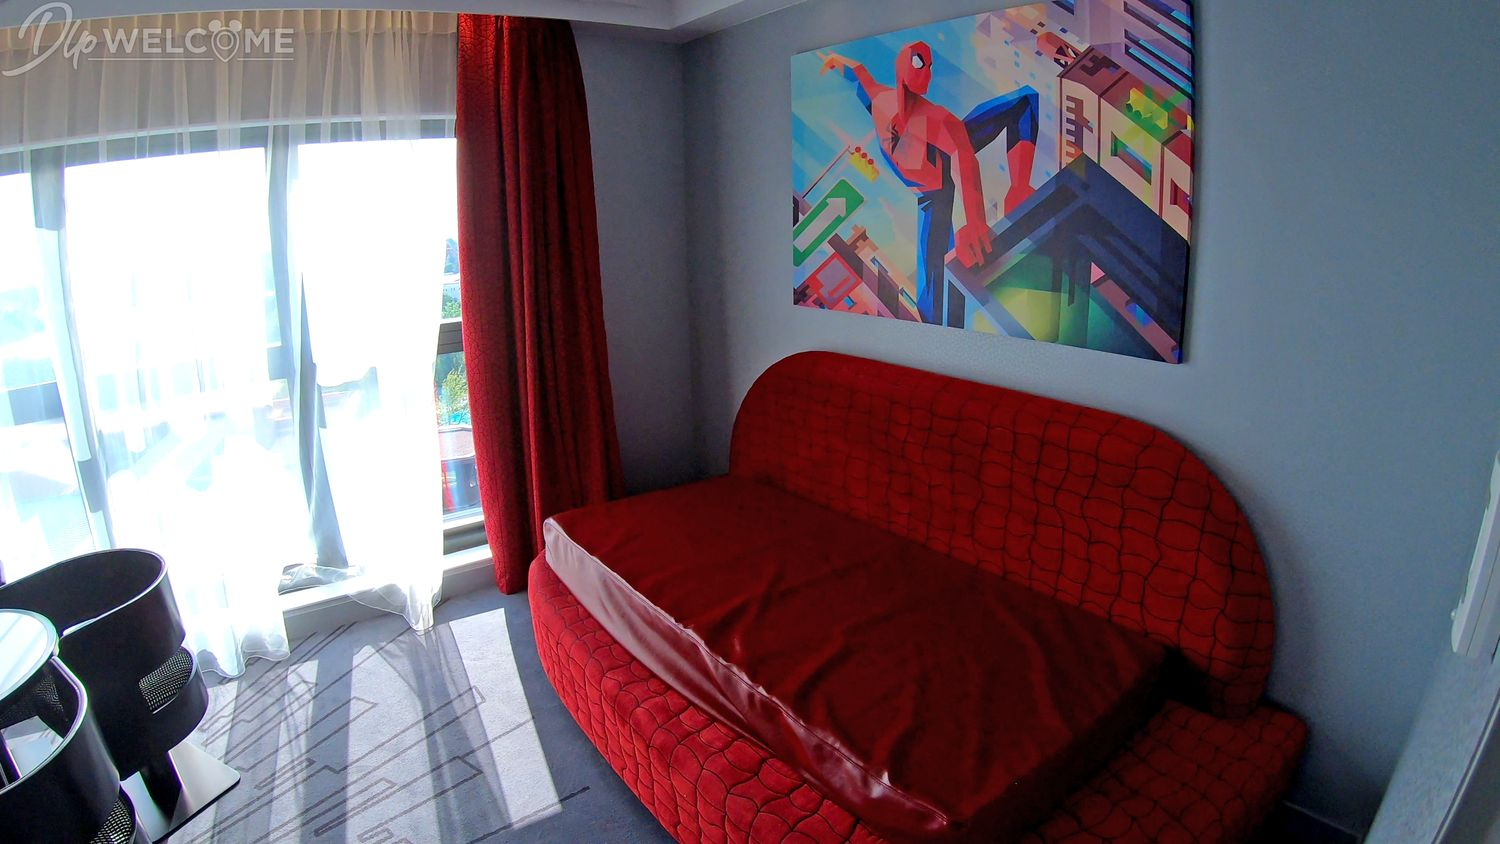 Disney's Hotel New York - The Art of Marvel [le 21 juin 2021] - Page 35 Vlcsnap-2021-06-05-11h58m40s552